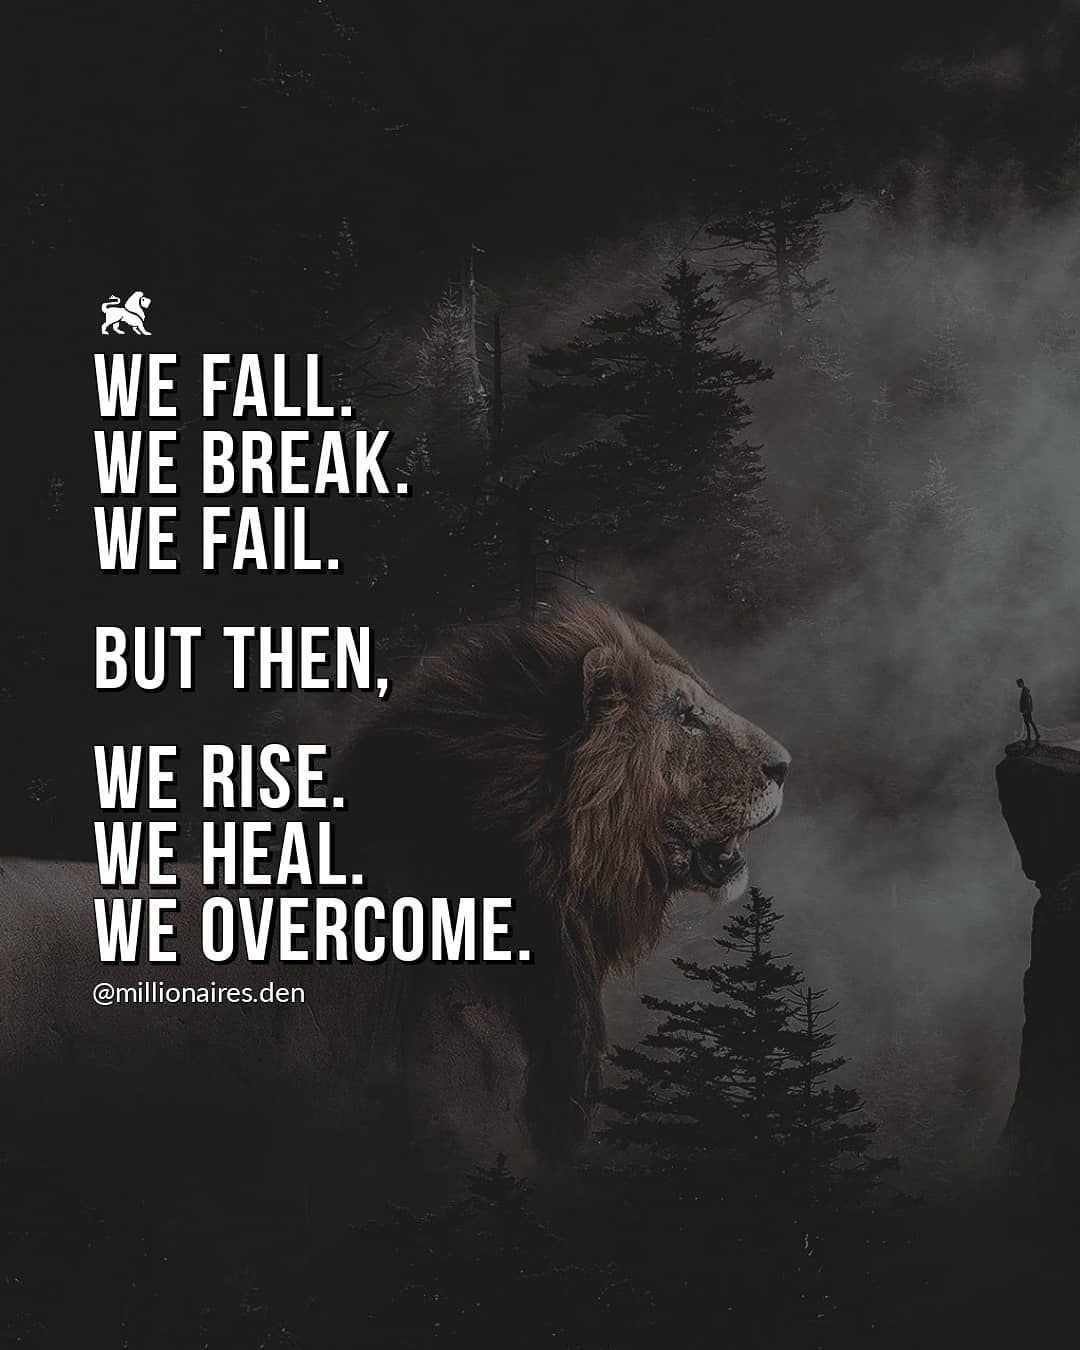 Image May Contain Text That Says We Fall We Break We Fail But Then We Rise We Heal Inspirational Quotes Motivation Positive Quotes Daily Quotes Positive